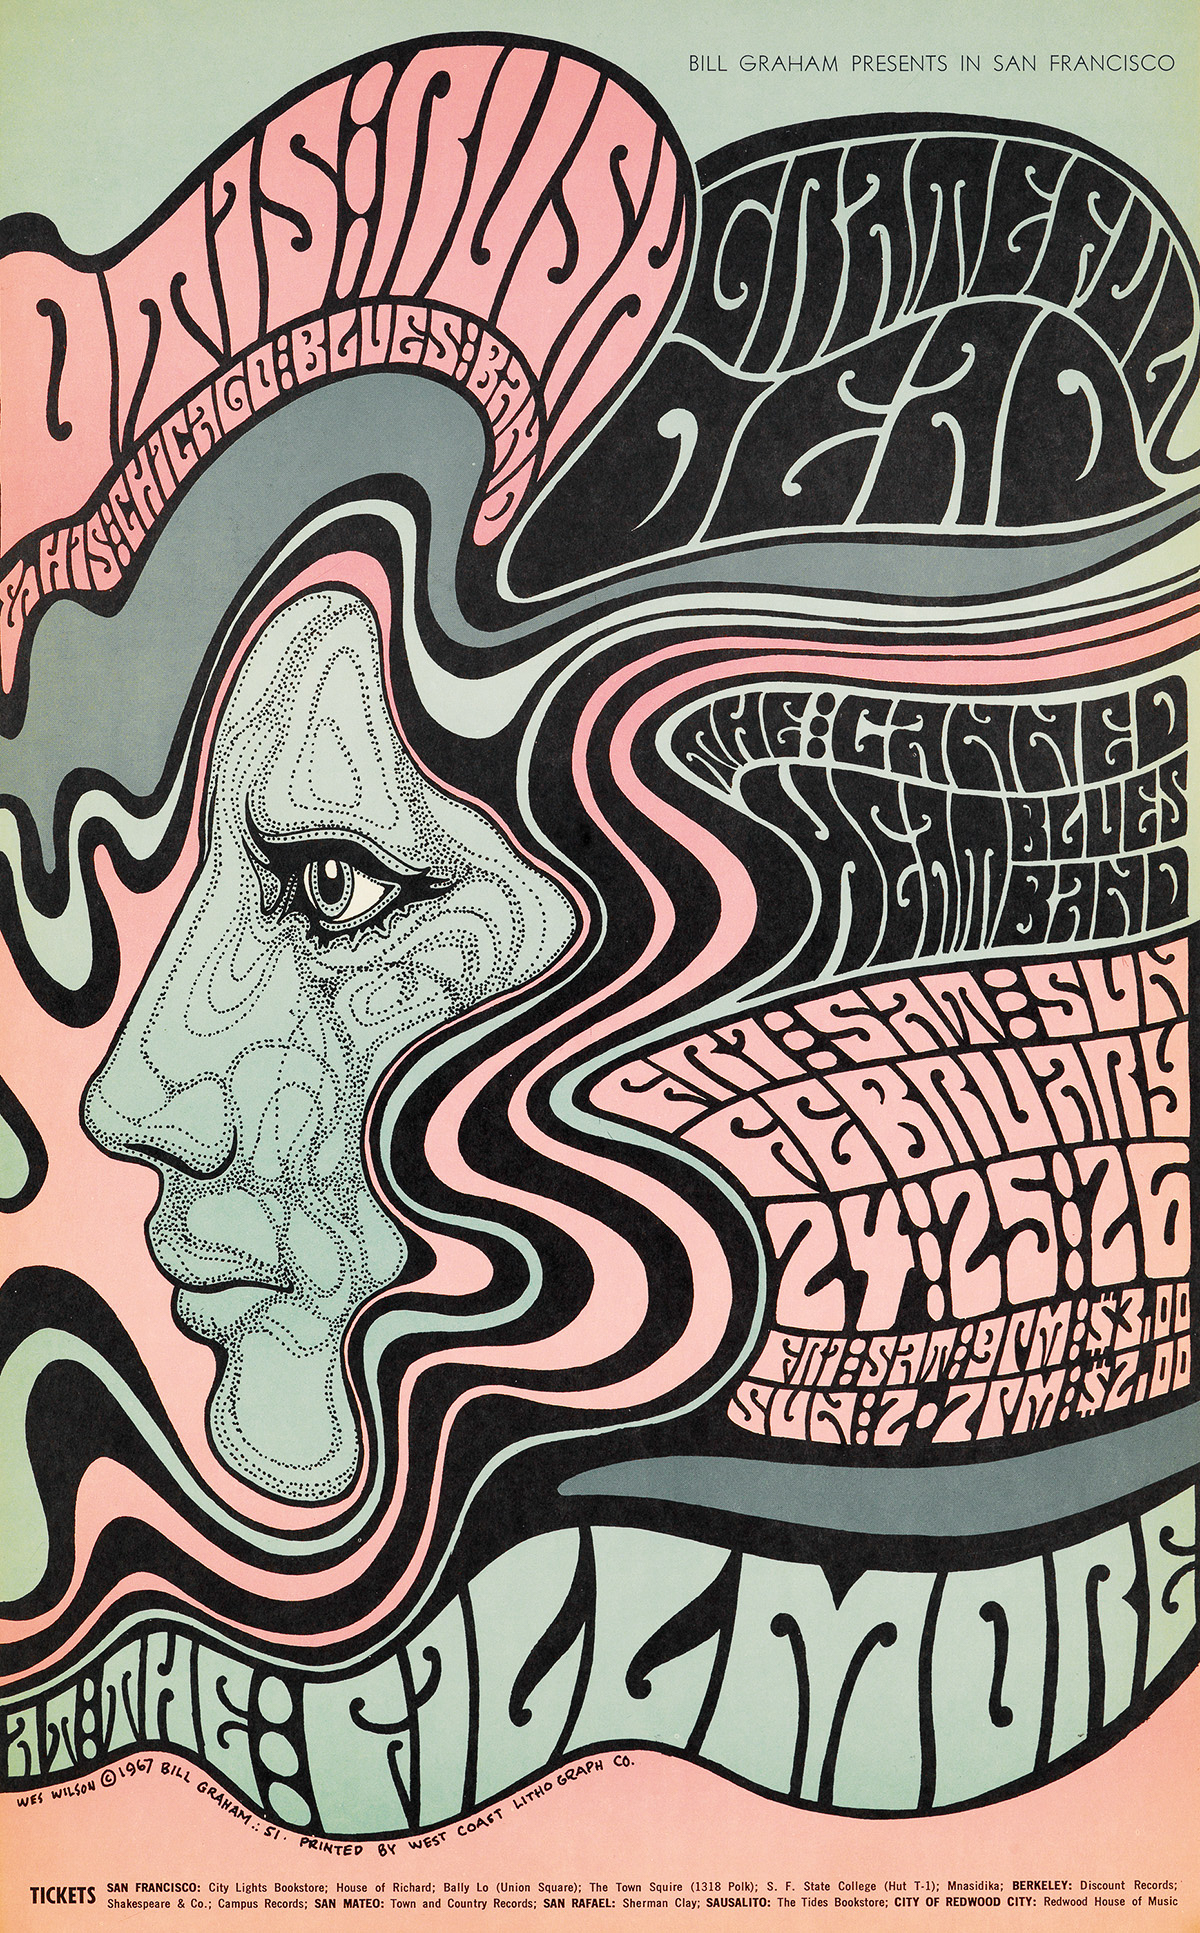 VARIOUS ARTISTS. [PSYCHEDELIC ROCK CONCERTS.] Group of 12 posters. 1967-1968. Sizes vary.